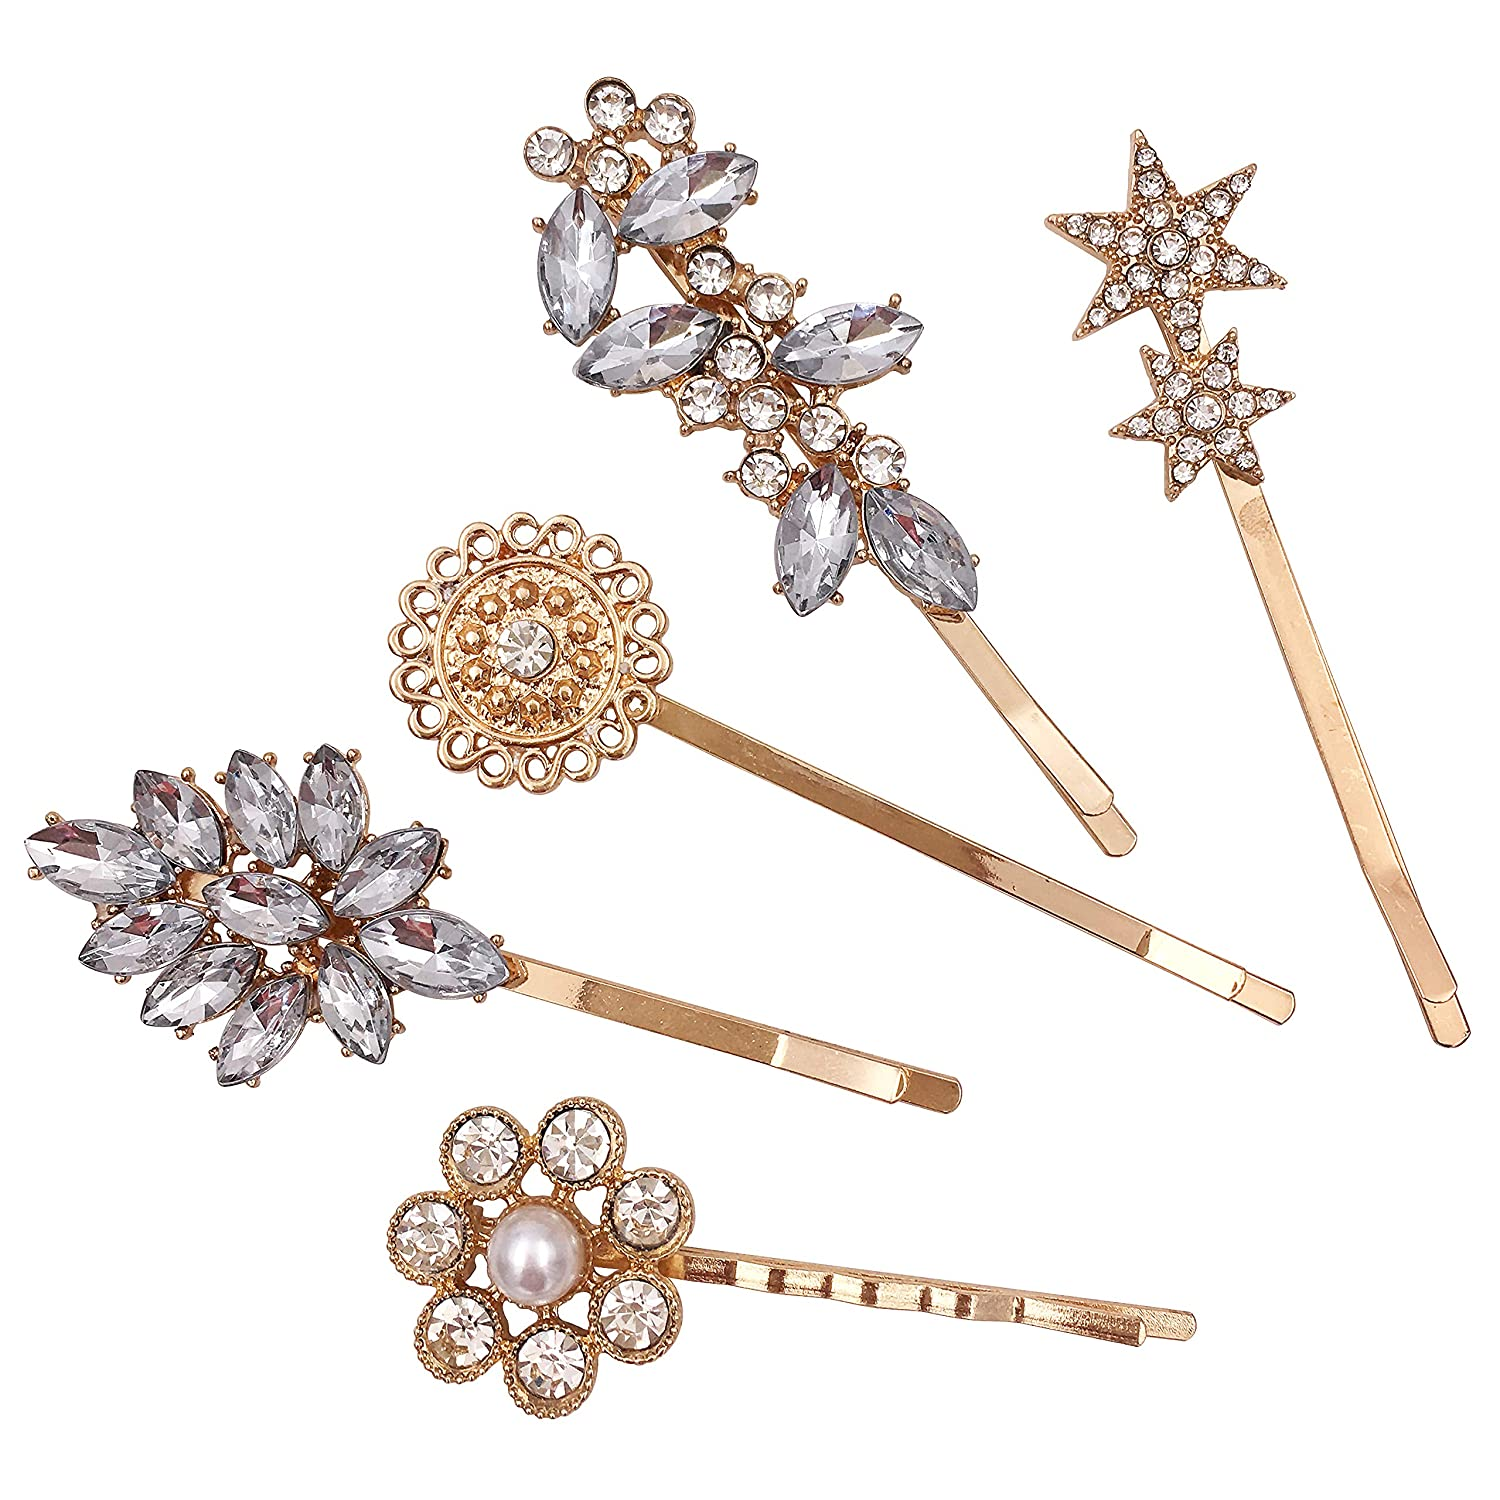 12-Pack Vintage Crystal Decorative Bobby Pins Hair Accessories Gold Tone  Women